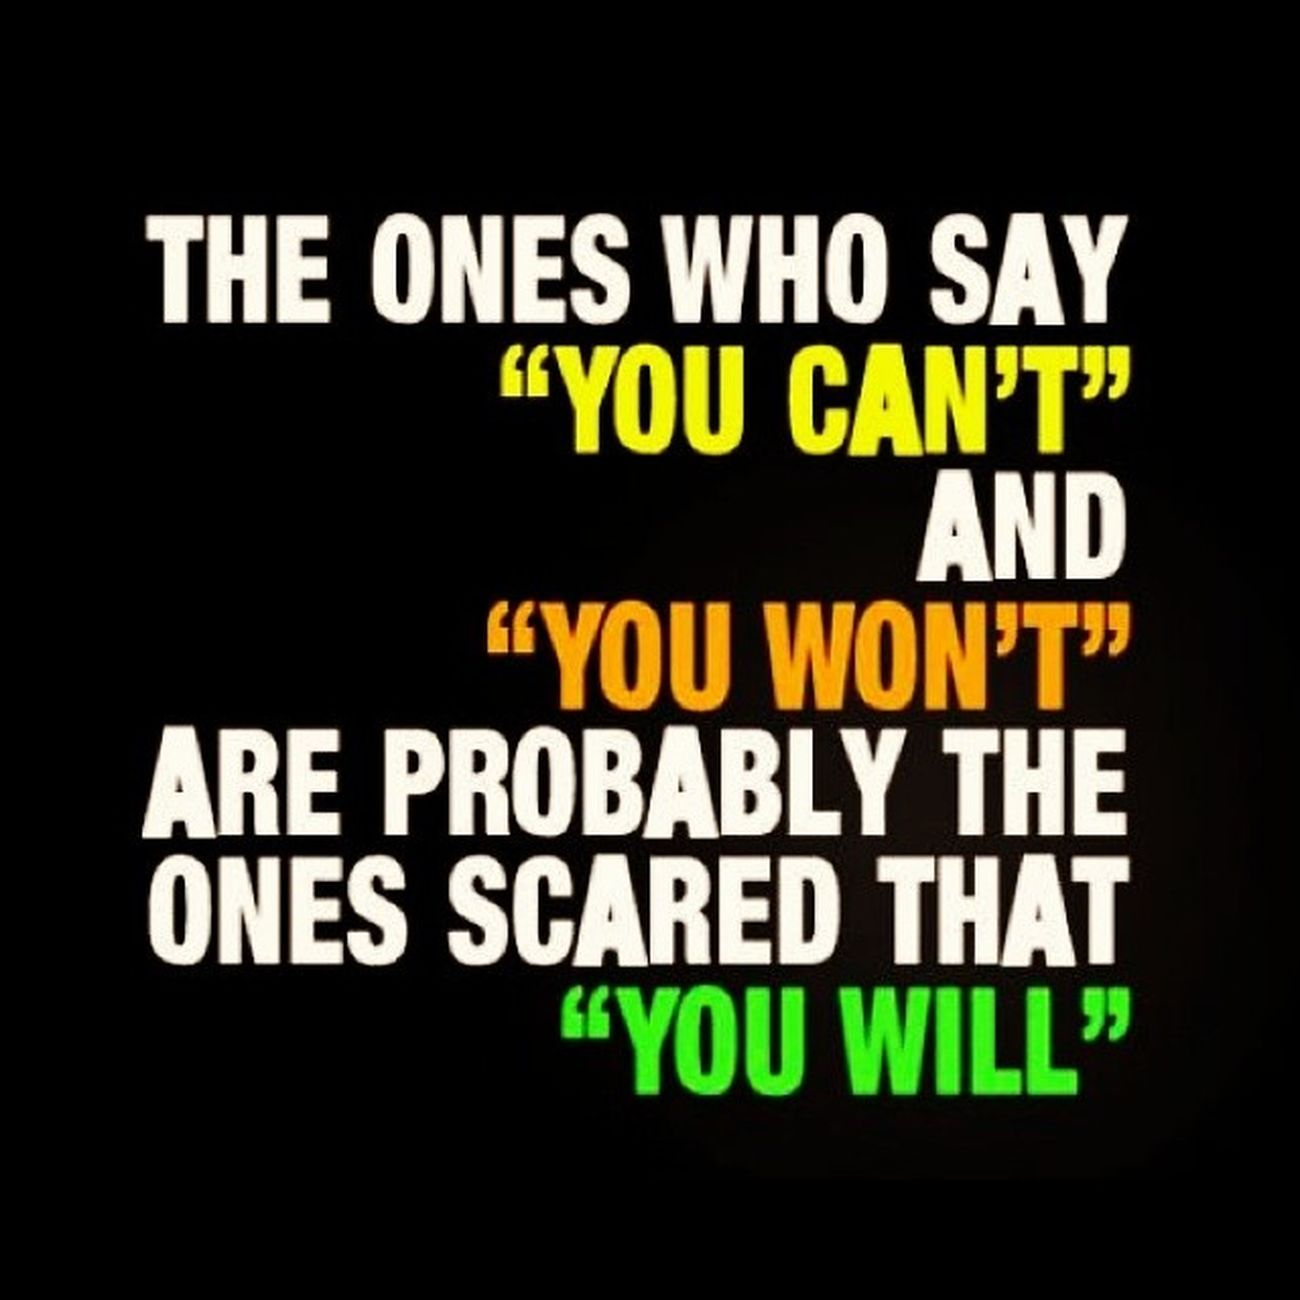 Proveemwrong Yesyoucan Success Daretodream dream achieve entrepreneurs homebusiness workonlinefromhome workfromhomemom succeed motivation mlm inspiration networkmarketing